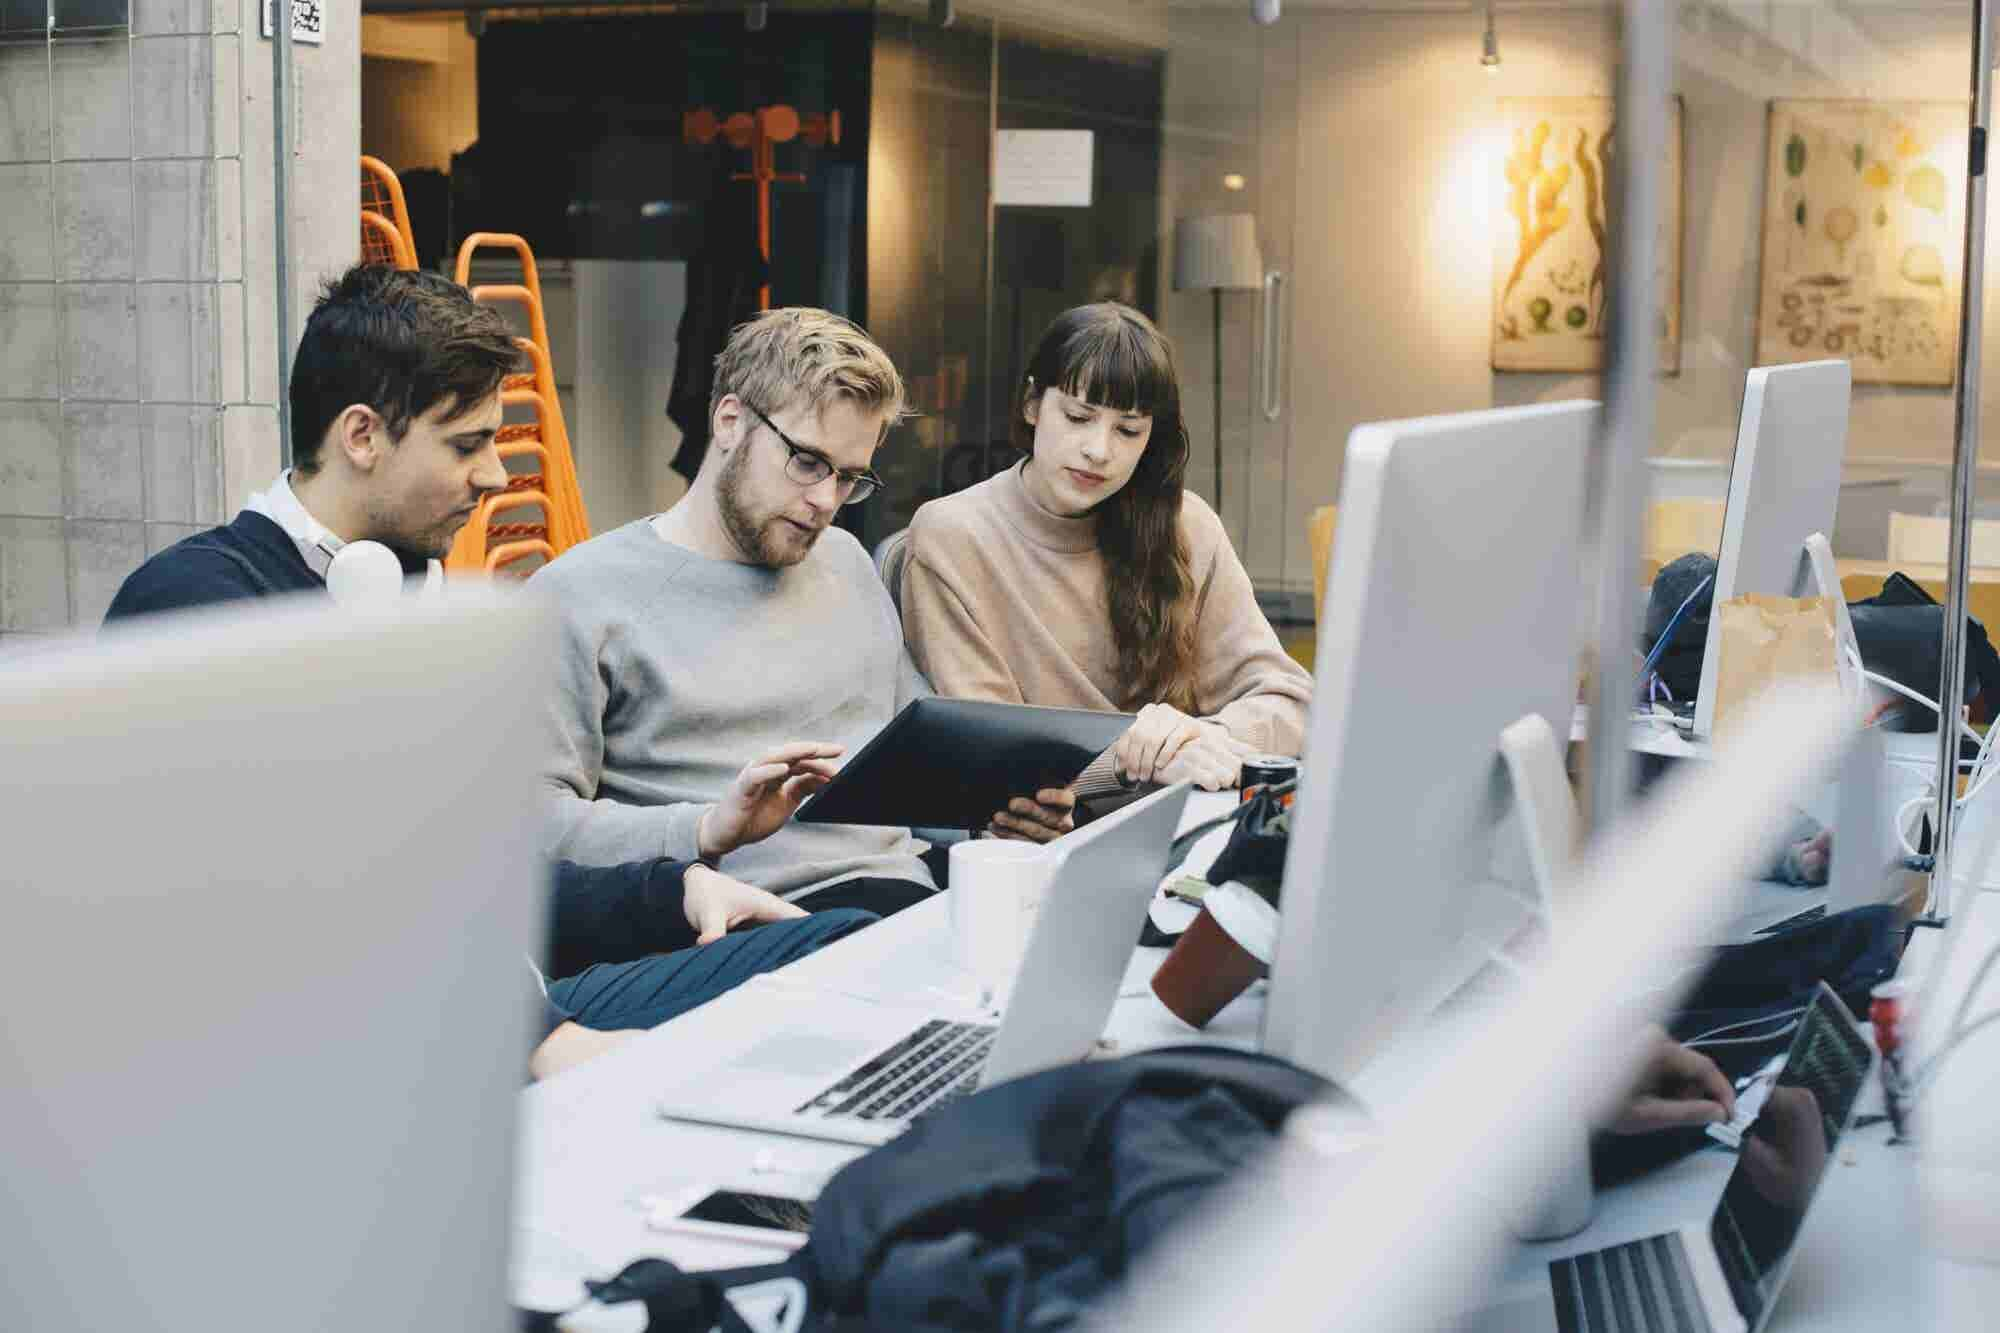 The Top 3 Ways to Save Money on Your Next IT Project